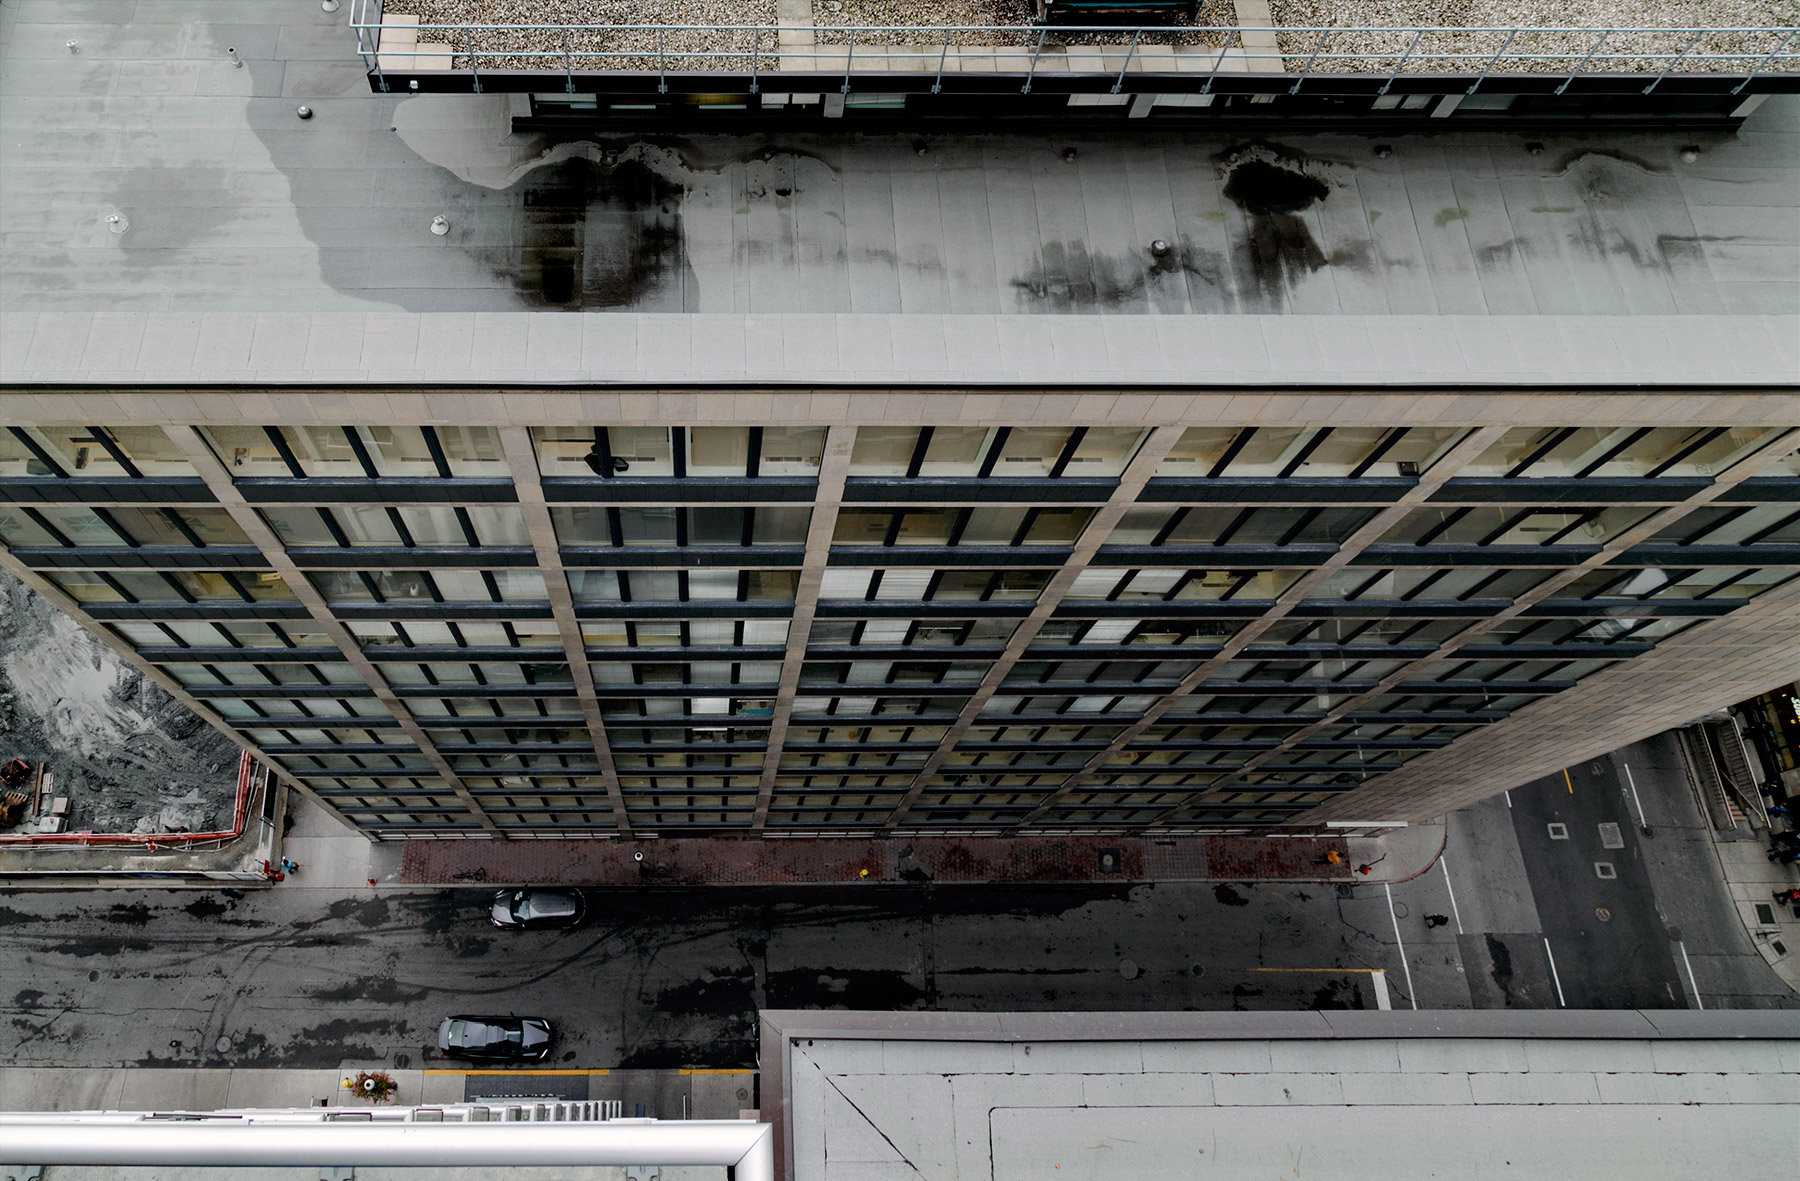 20150319. A modernist 55 Yonge is a cliff over the concrete cany